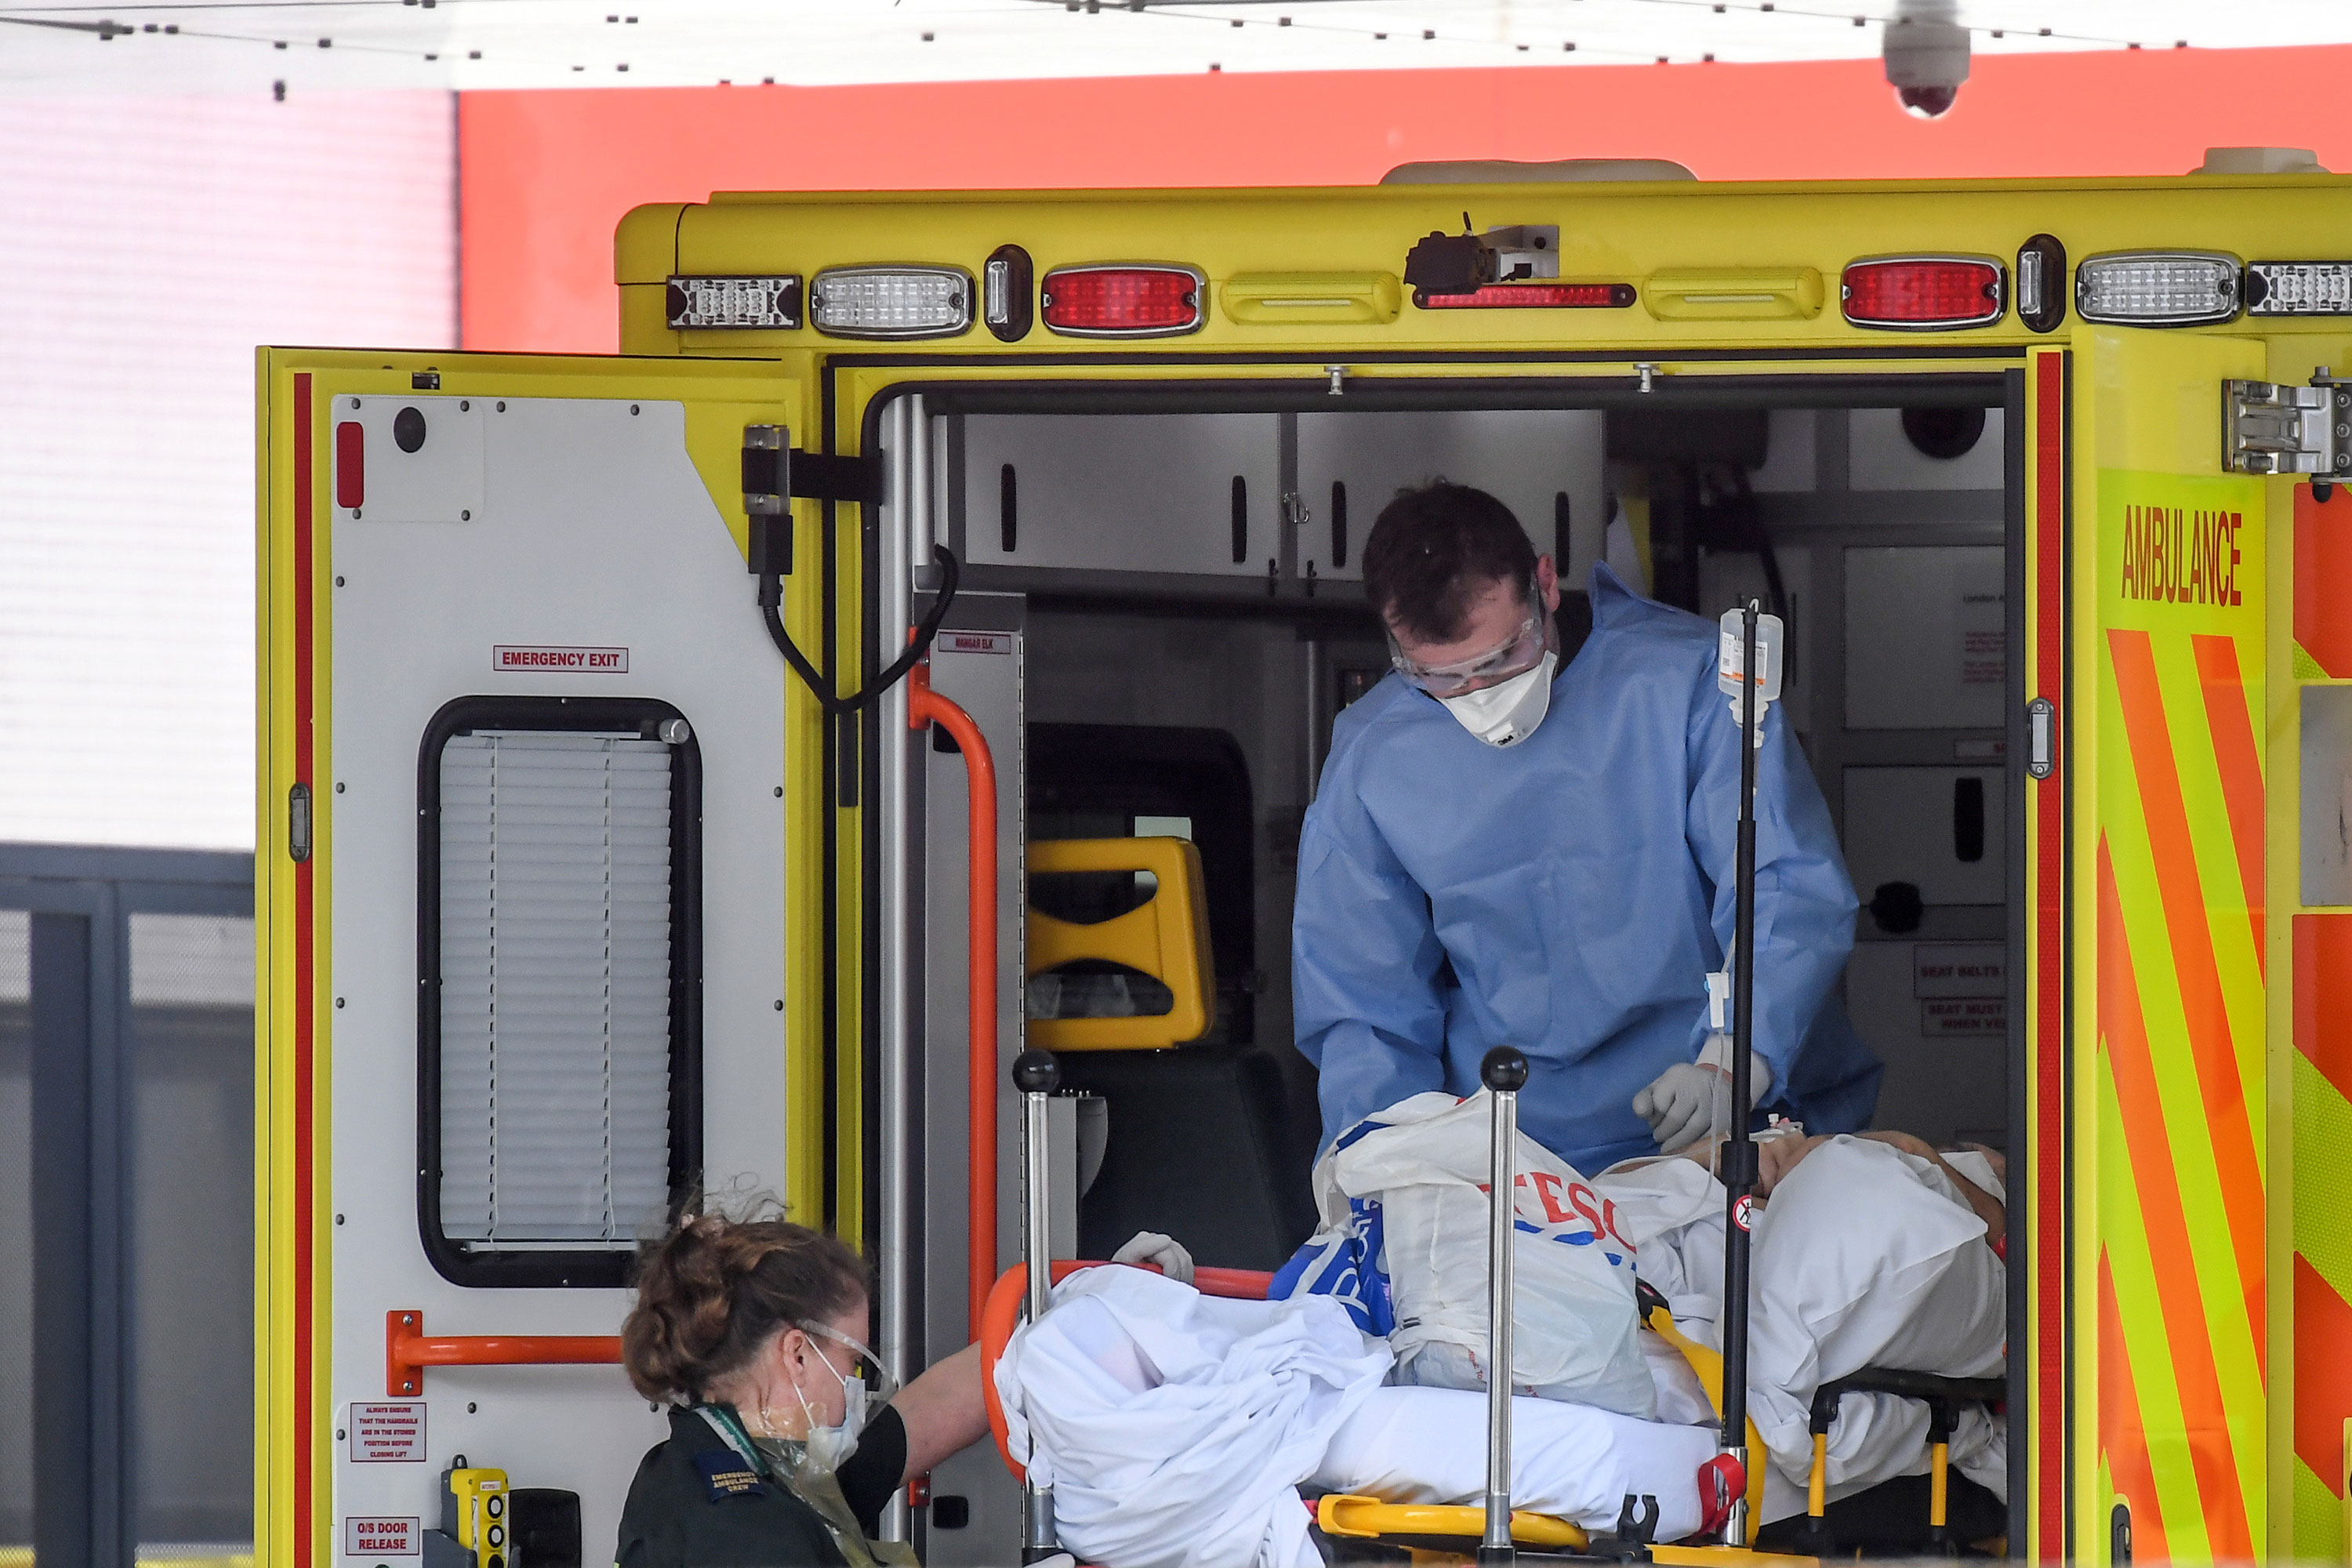 Doctors unload a patient outside St. Thomas' Hospital in London, on April 7.